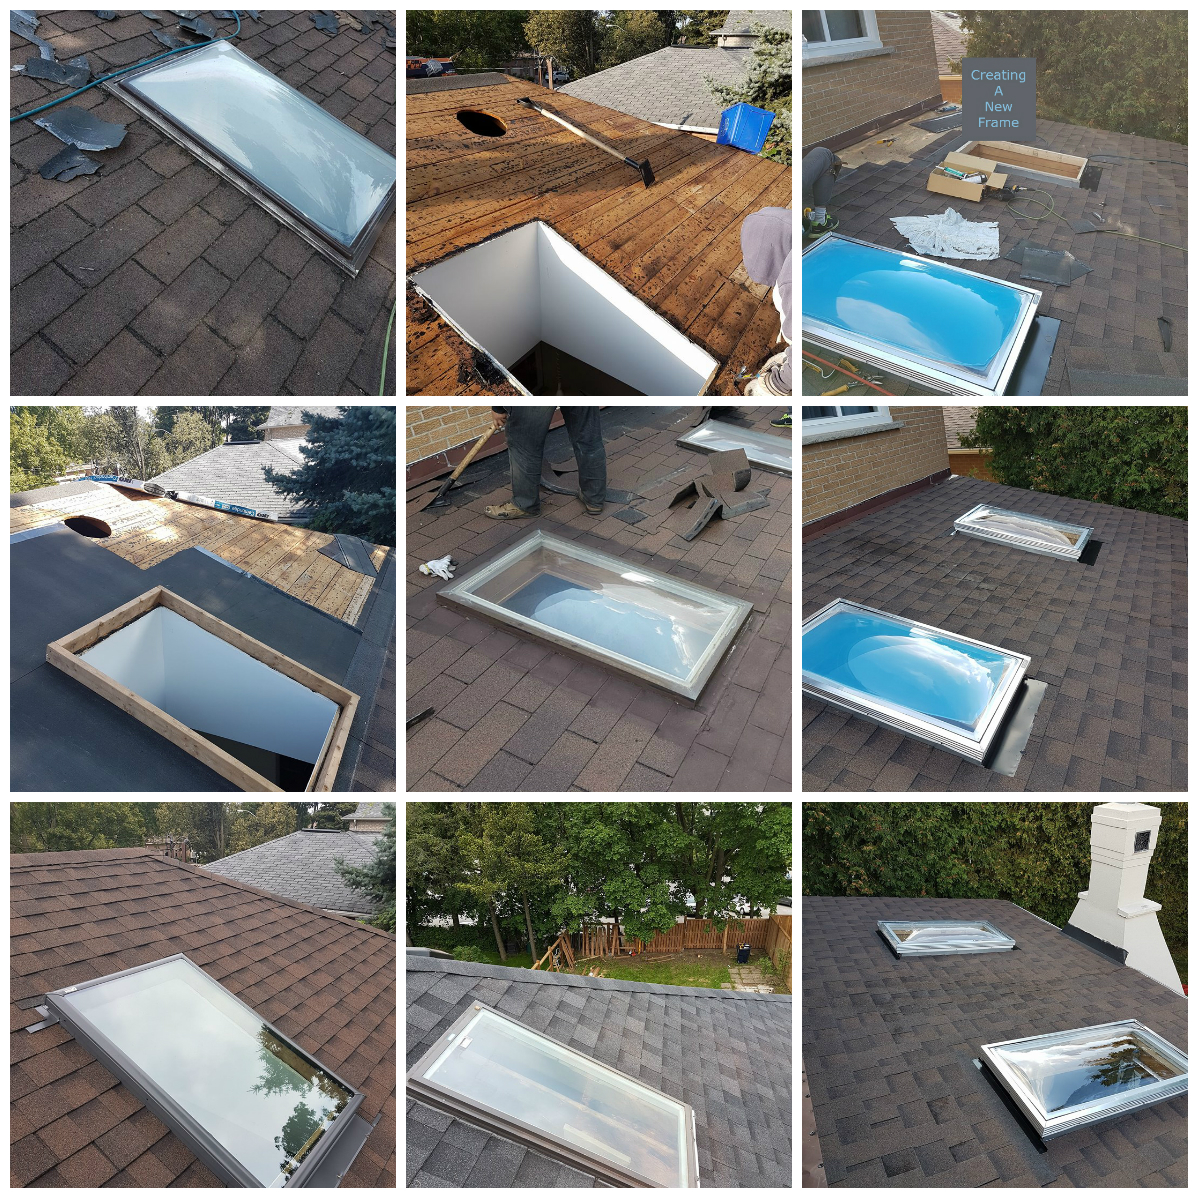 Skylights - Ace Roofing Services Inc. - Toronto (GTA) Roofing Company